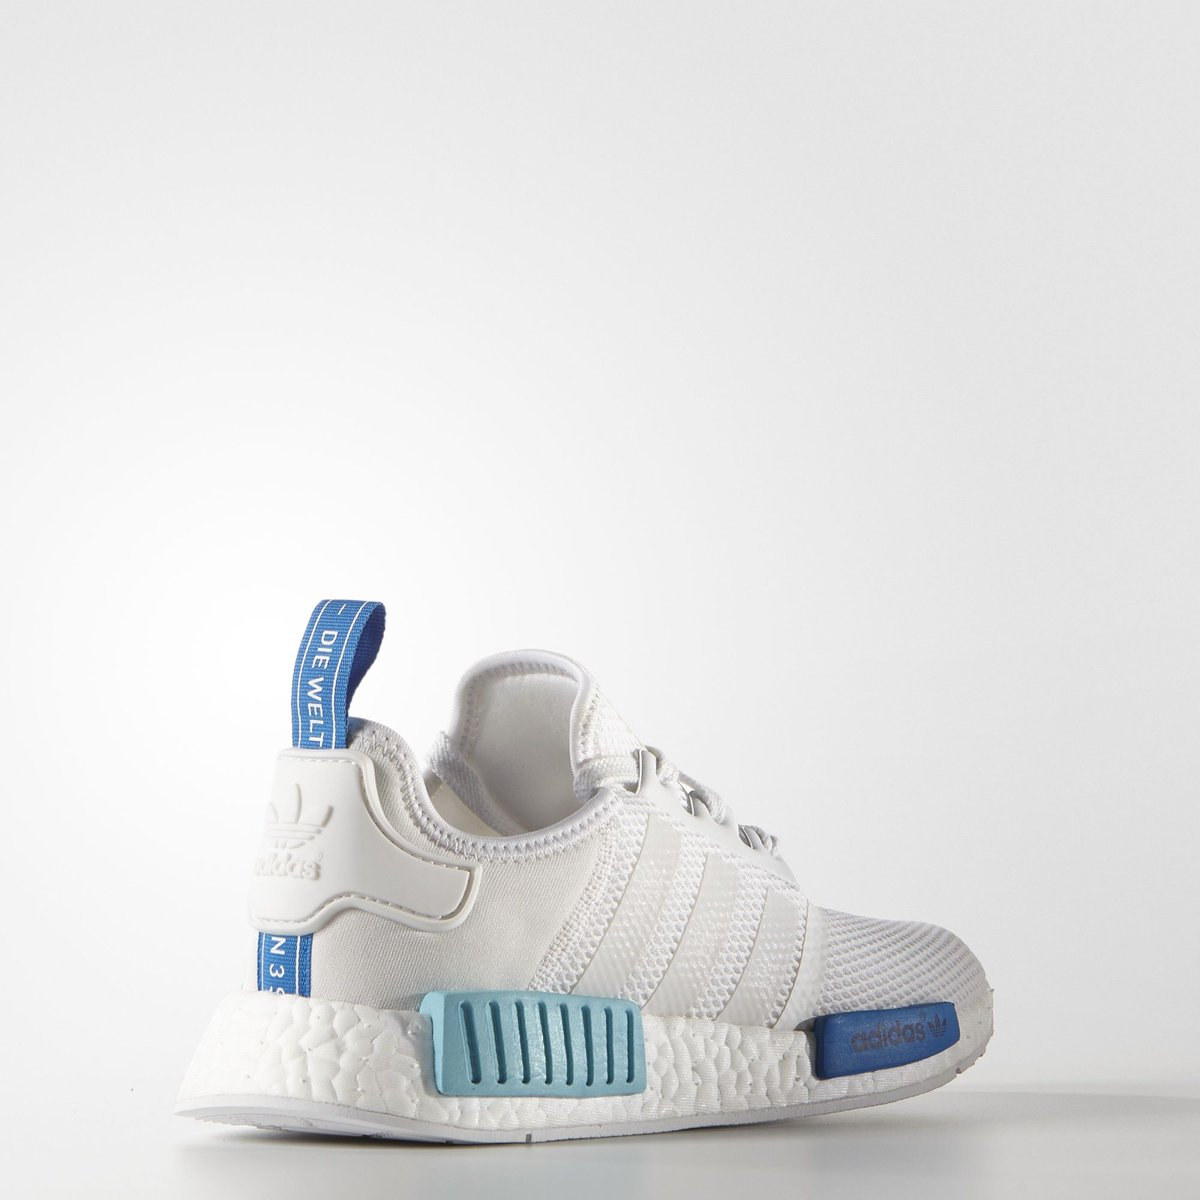 online store 5ed92 2f159 Adidas Nmd White And Blue kenmore-cleaning.co.uk